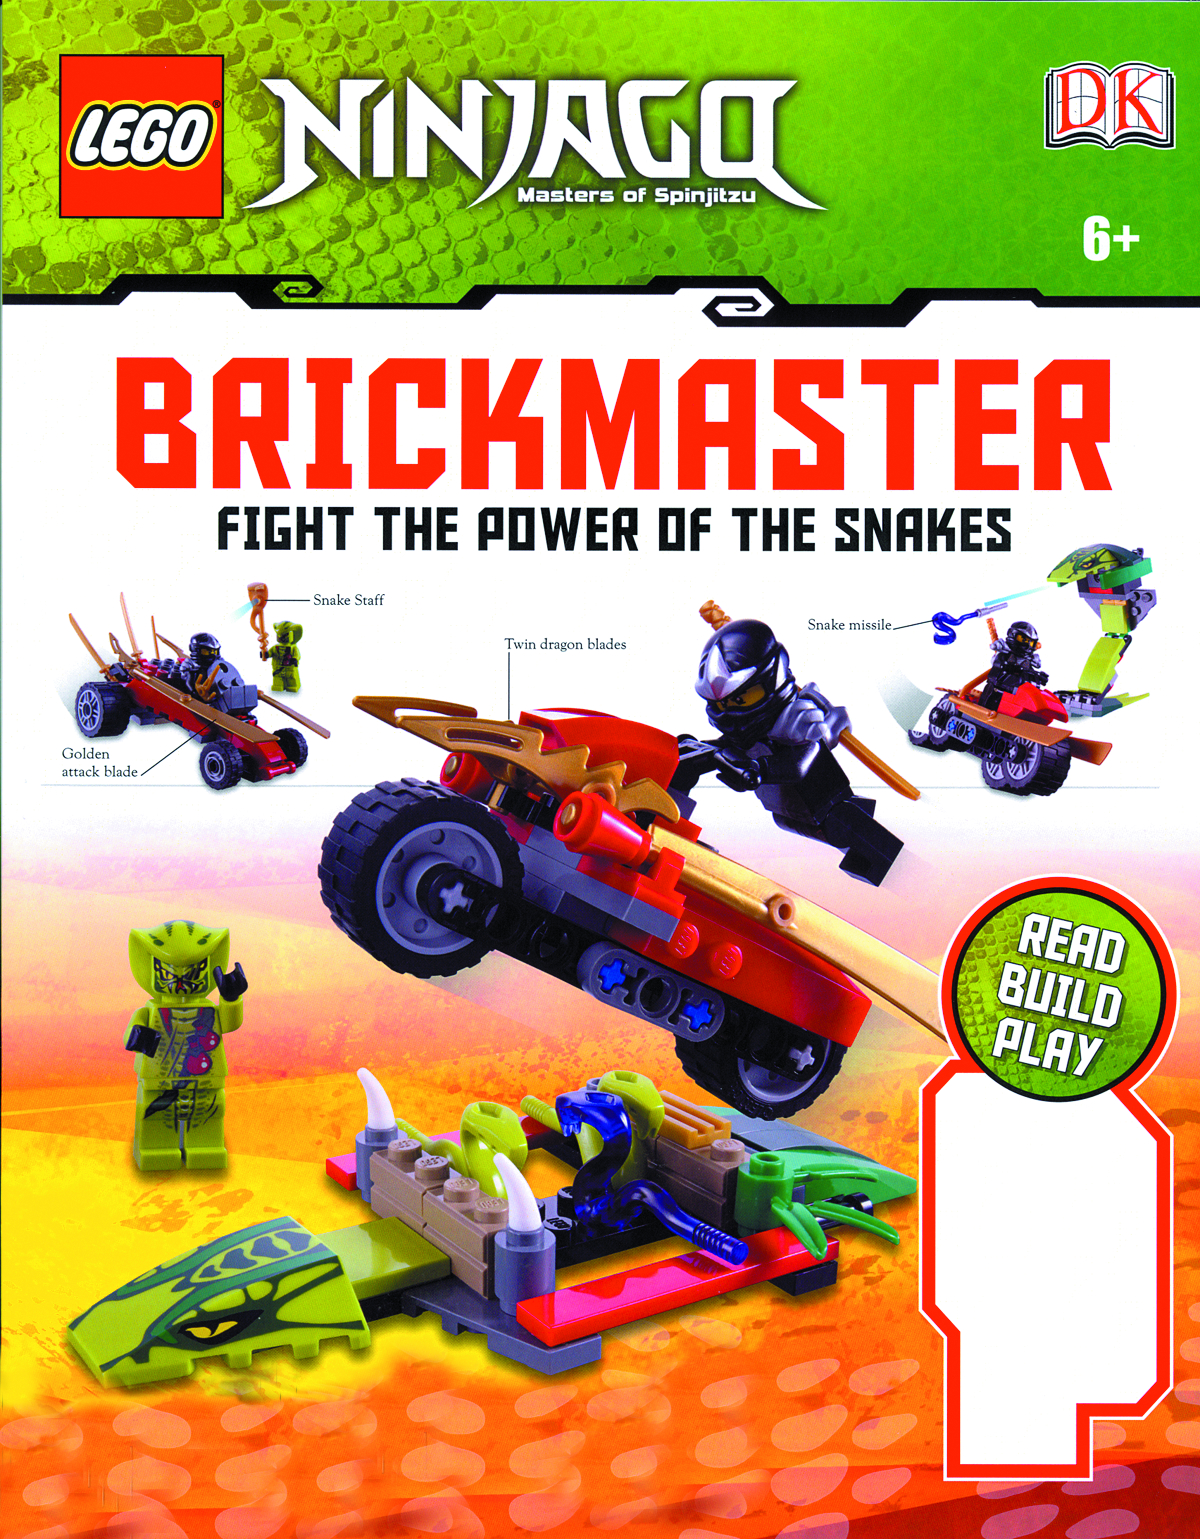 LEGO NINJAGO BRICKMASTER FIGHT POWER OF SNAKES HC